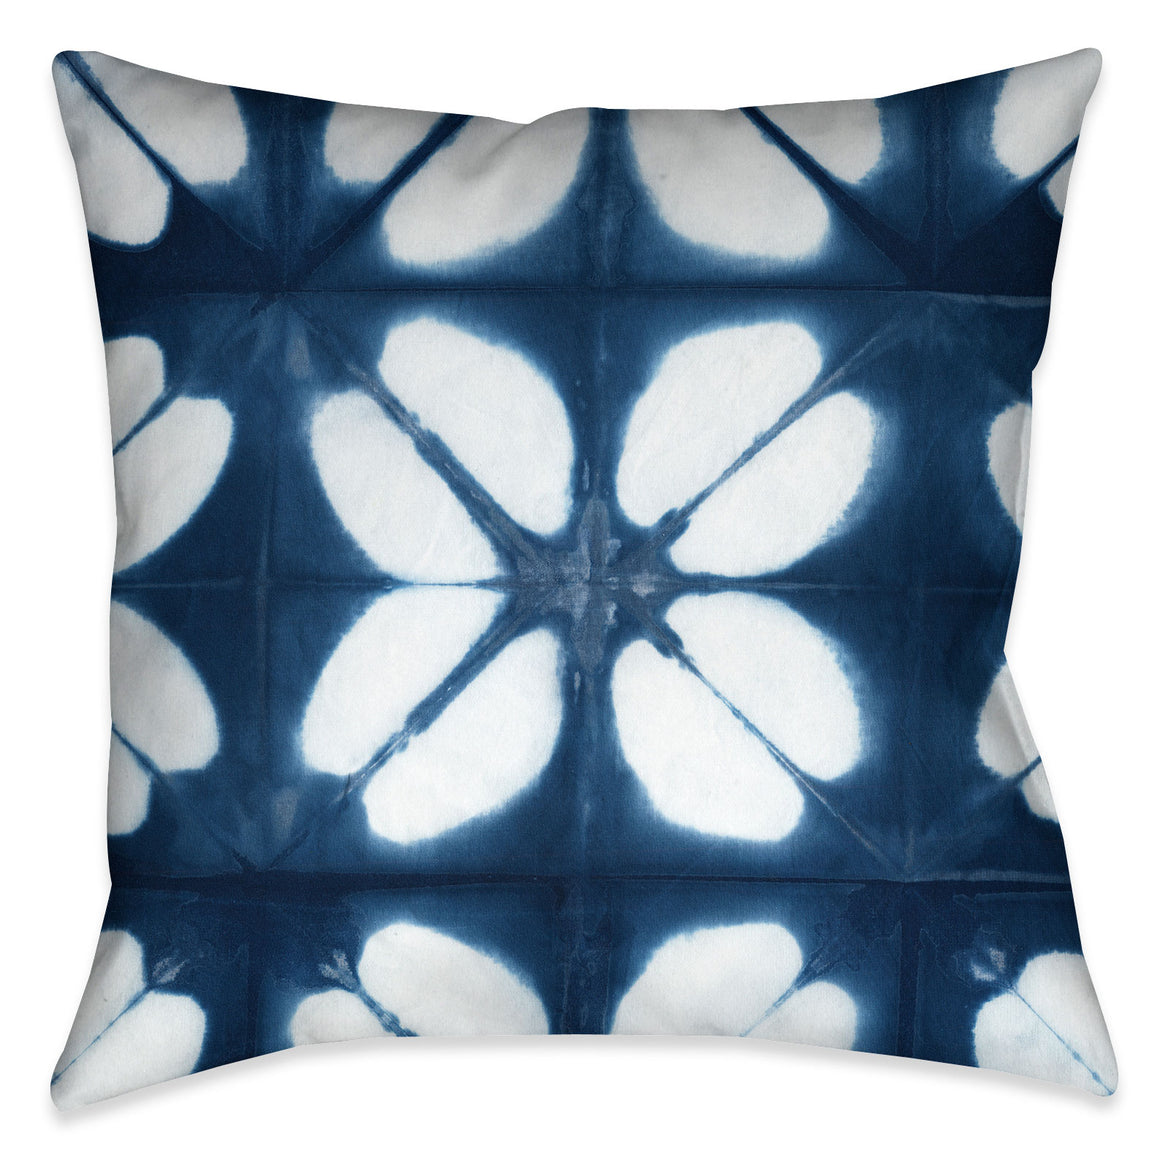 The Indigo trend is ever growing as more contemporary artists are designing with shibori elements and sharing these beautiful designs for you to enrich your home decor!